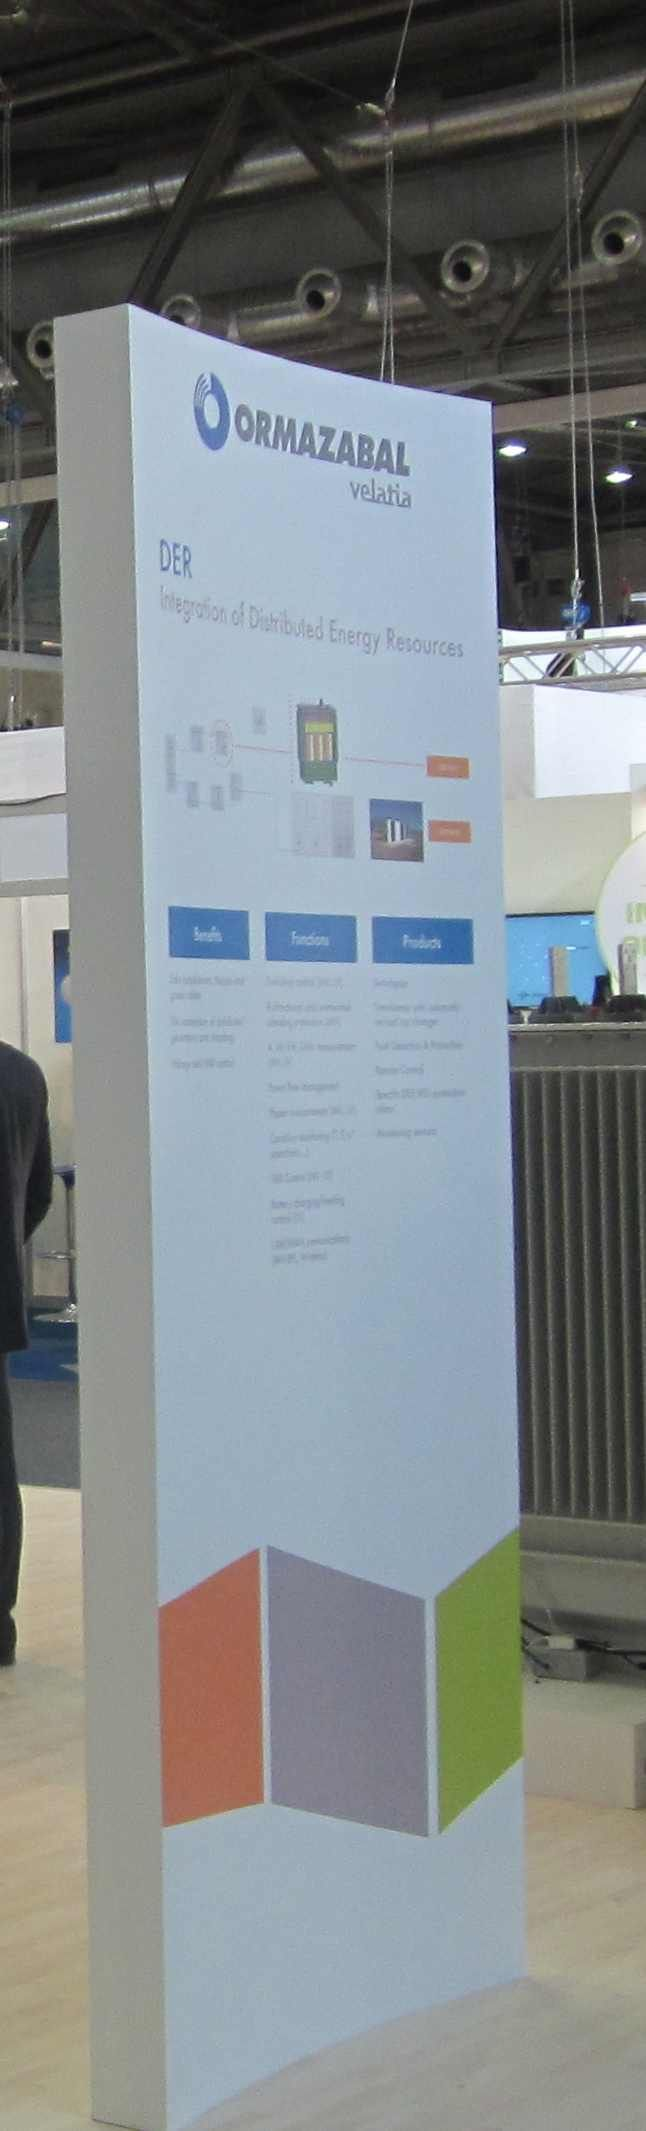 European Utility Week - Integration of Distributed Energy Resources